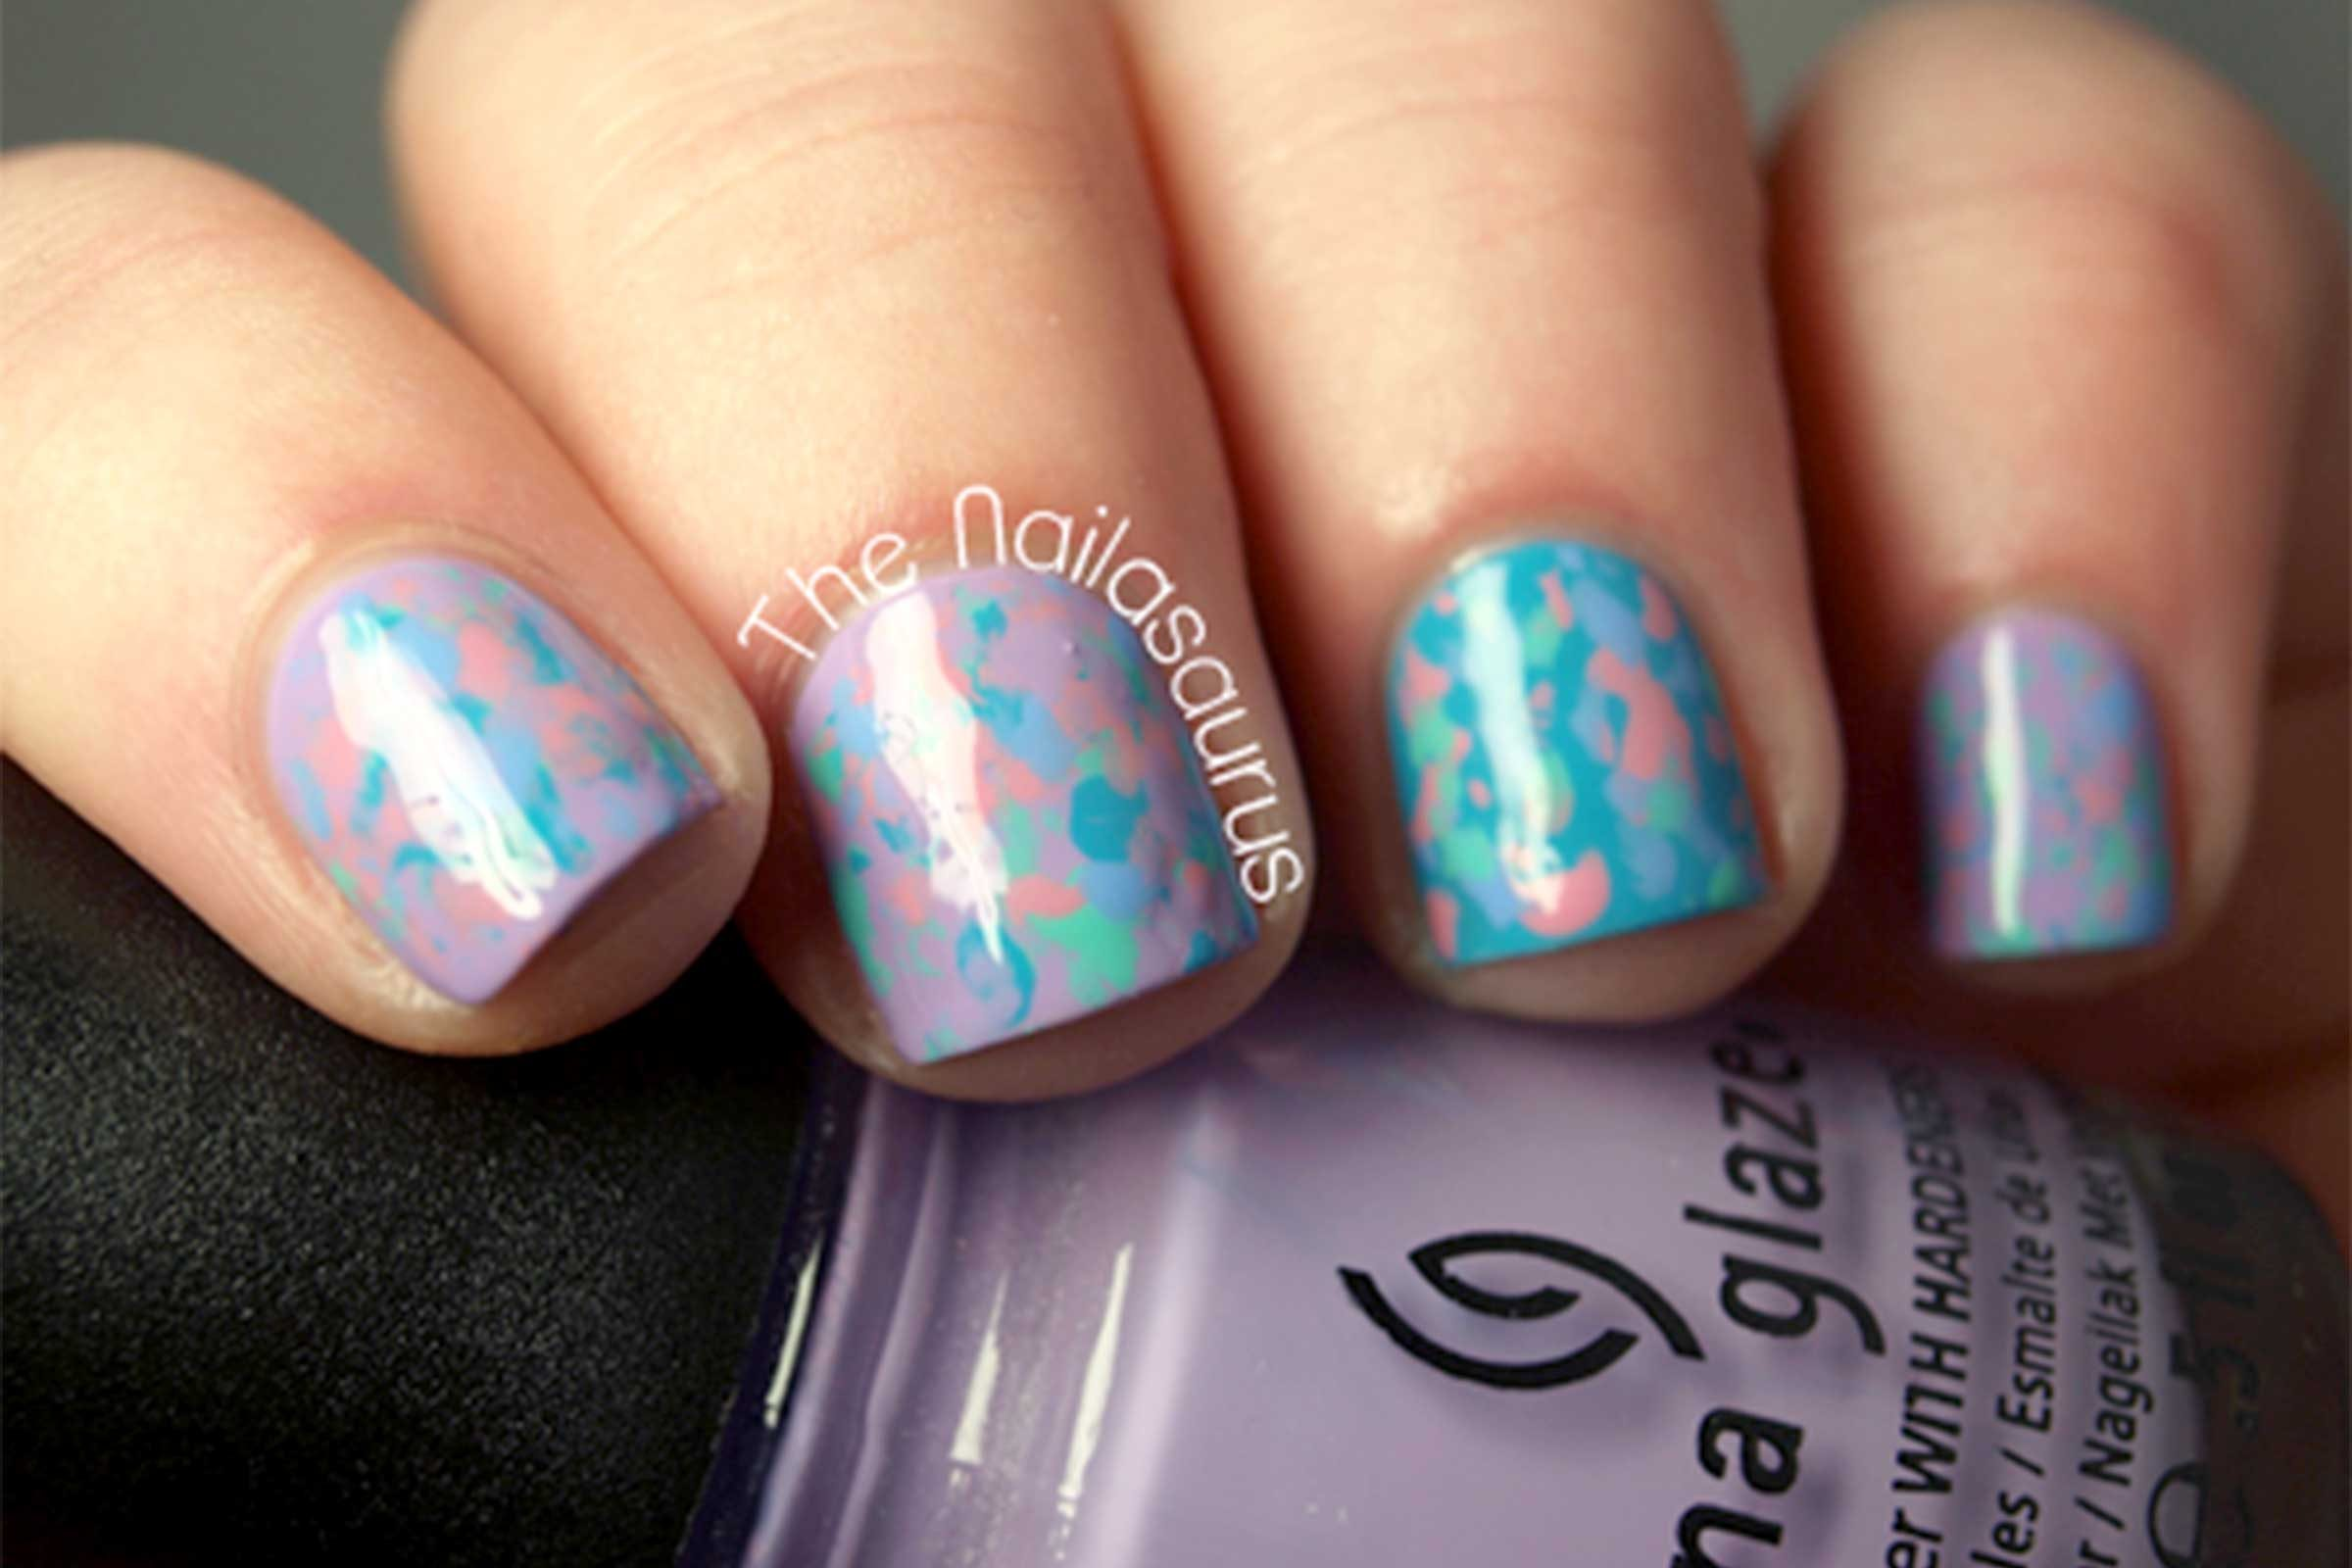 Nail art designs easy hacks for diy manicures readers digest use a toothbrush prinsesfo Images